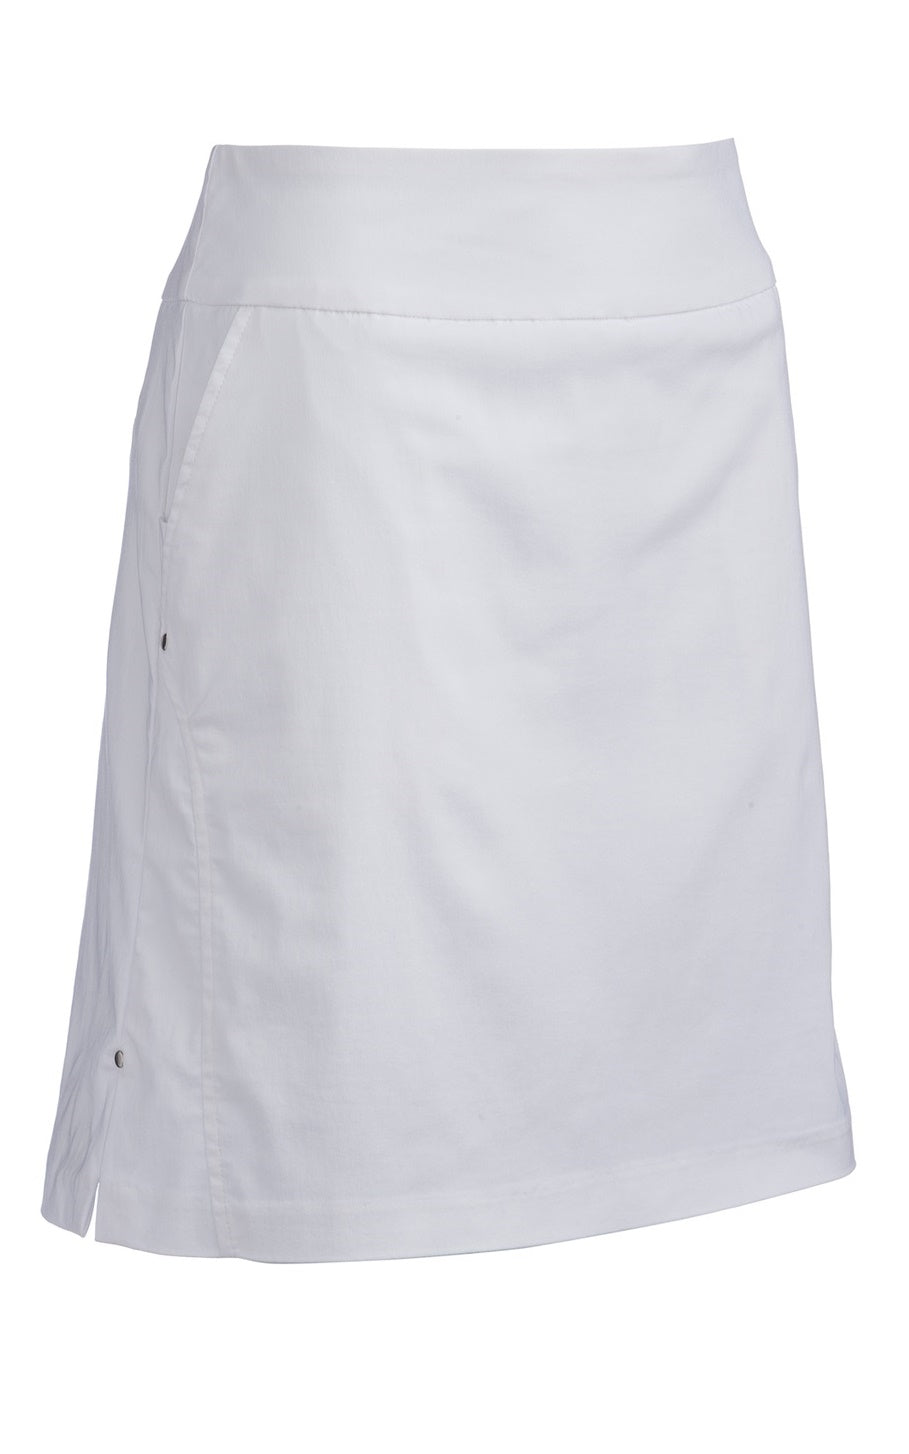 Bette & Court Smooth Fit Skirt - White